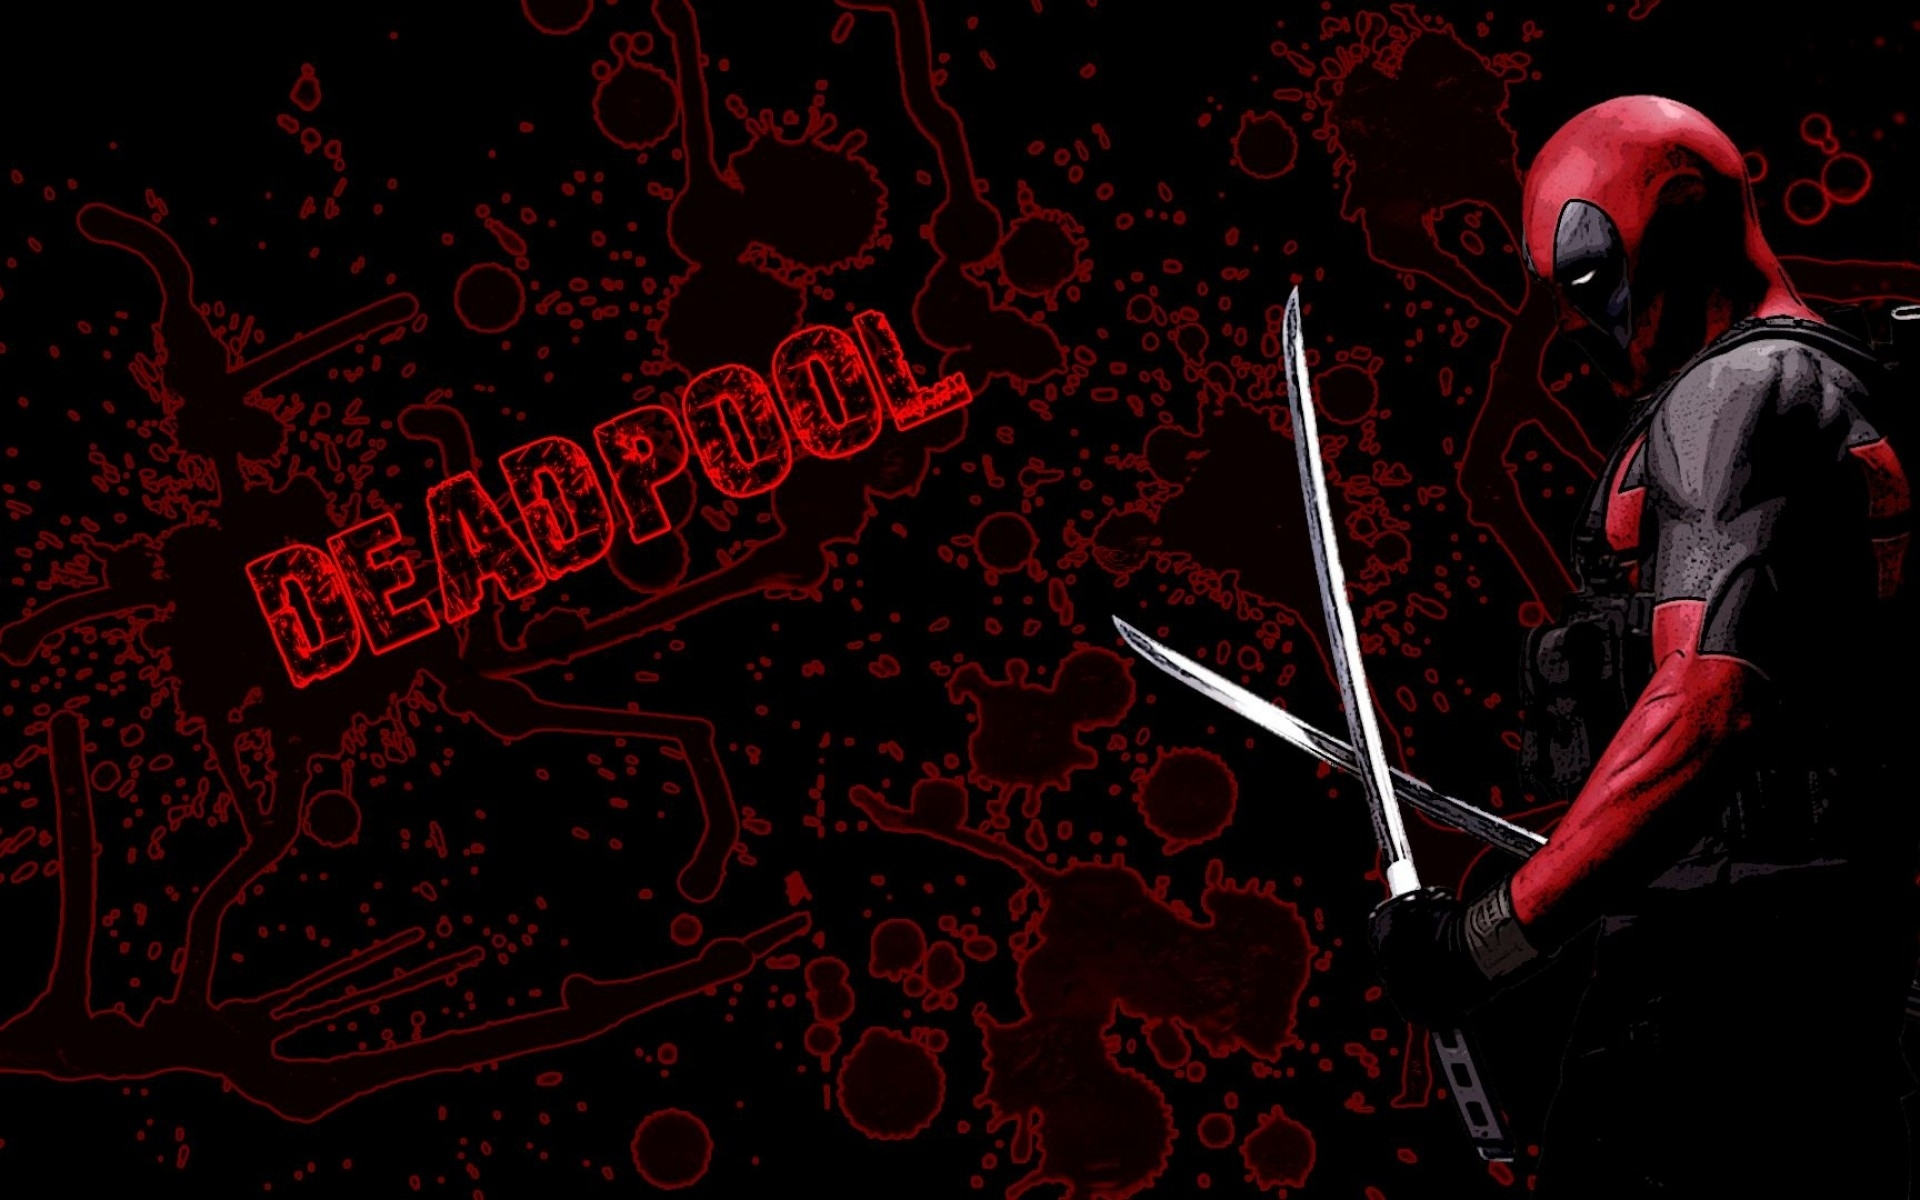 10 most popular wallpaper for ps3 download full hd 1080p for pc